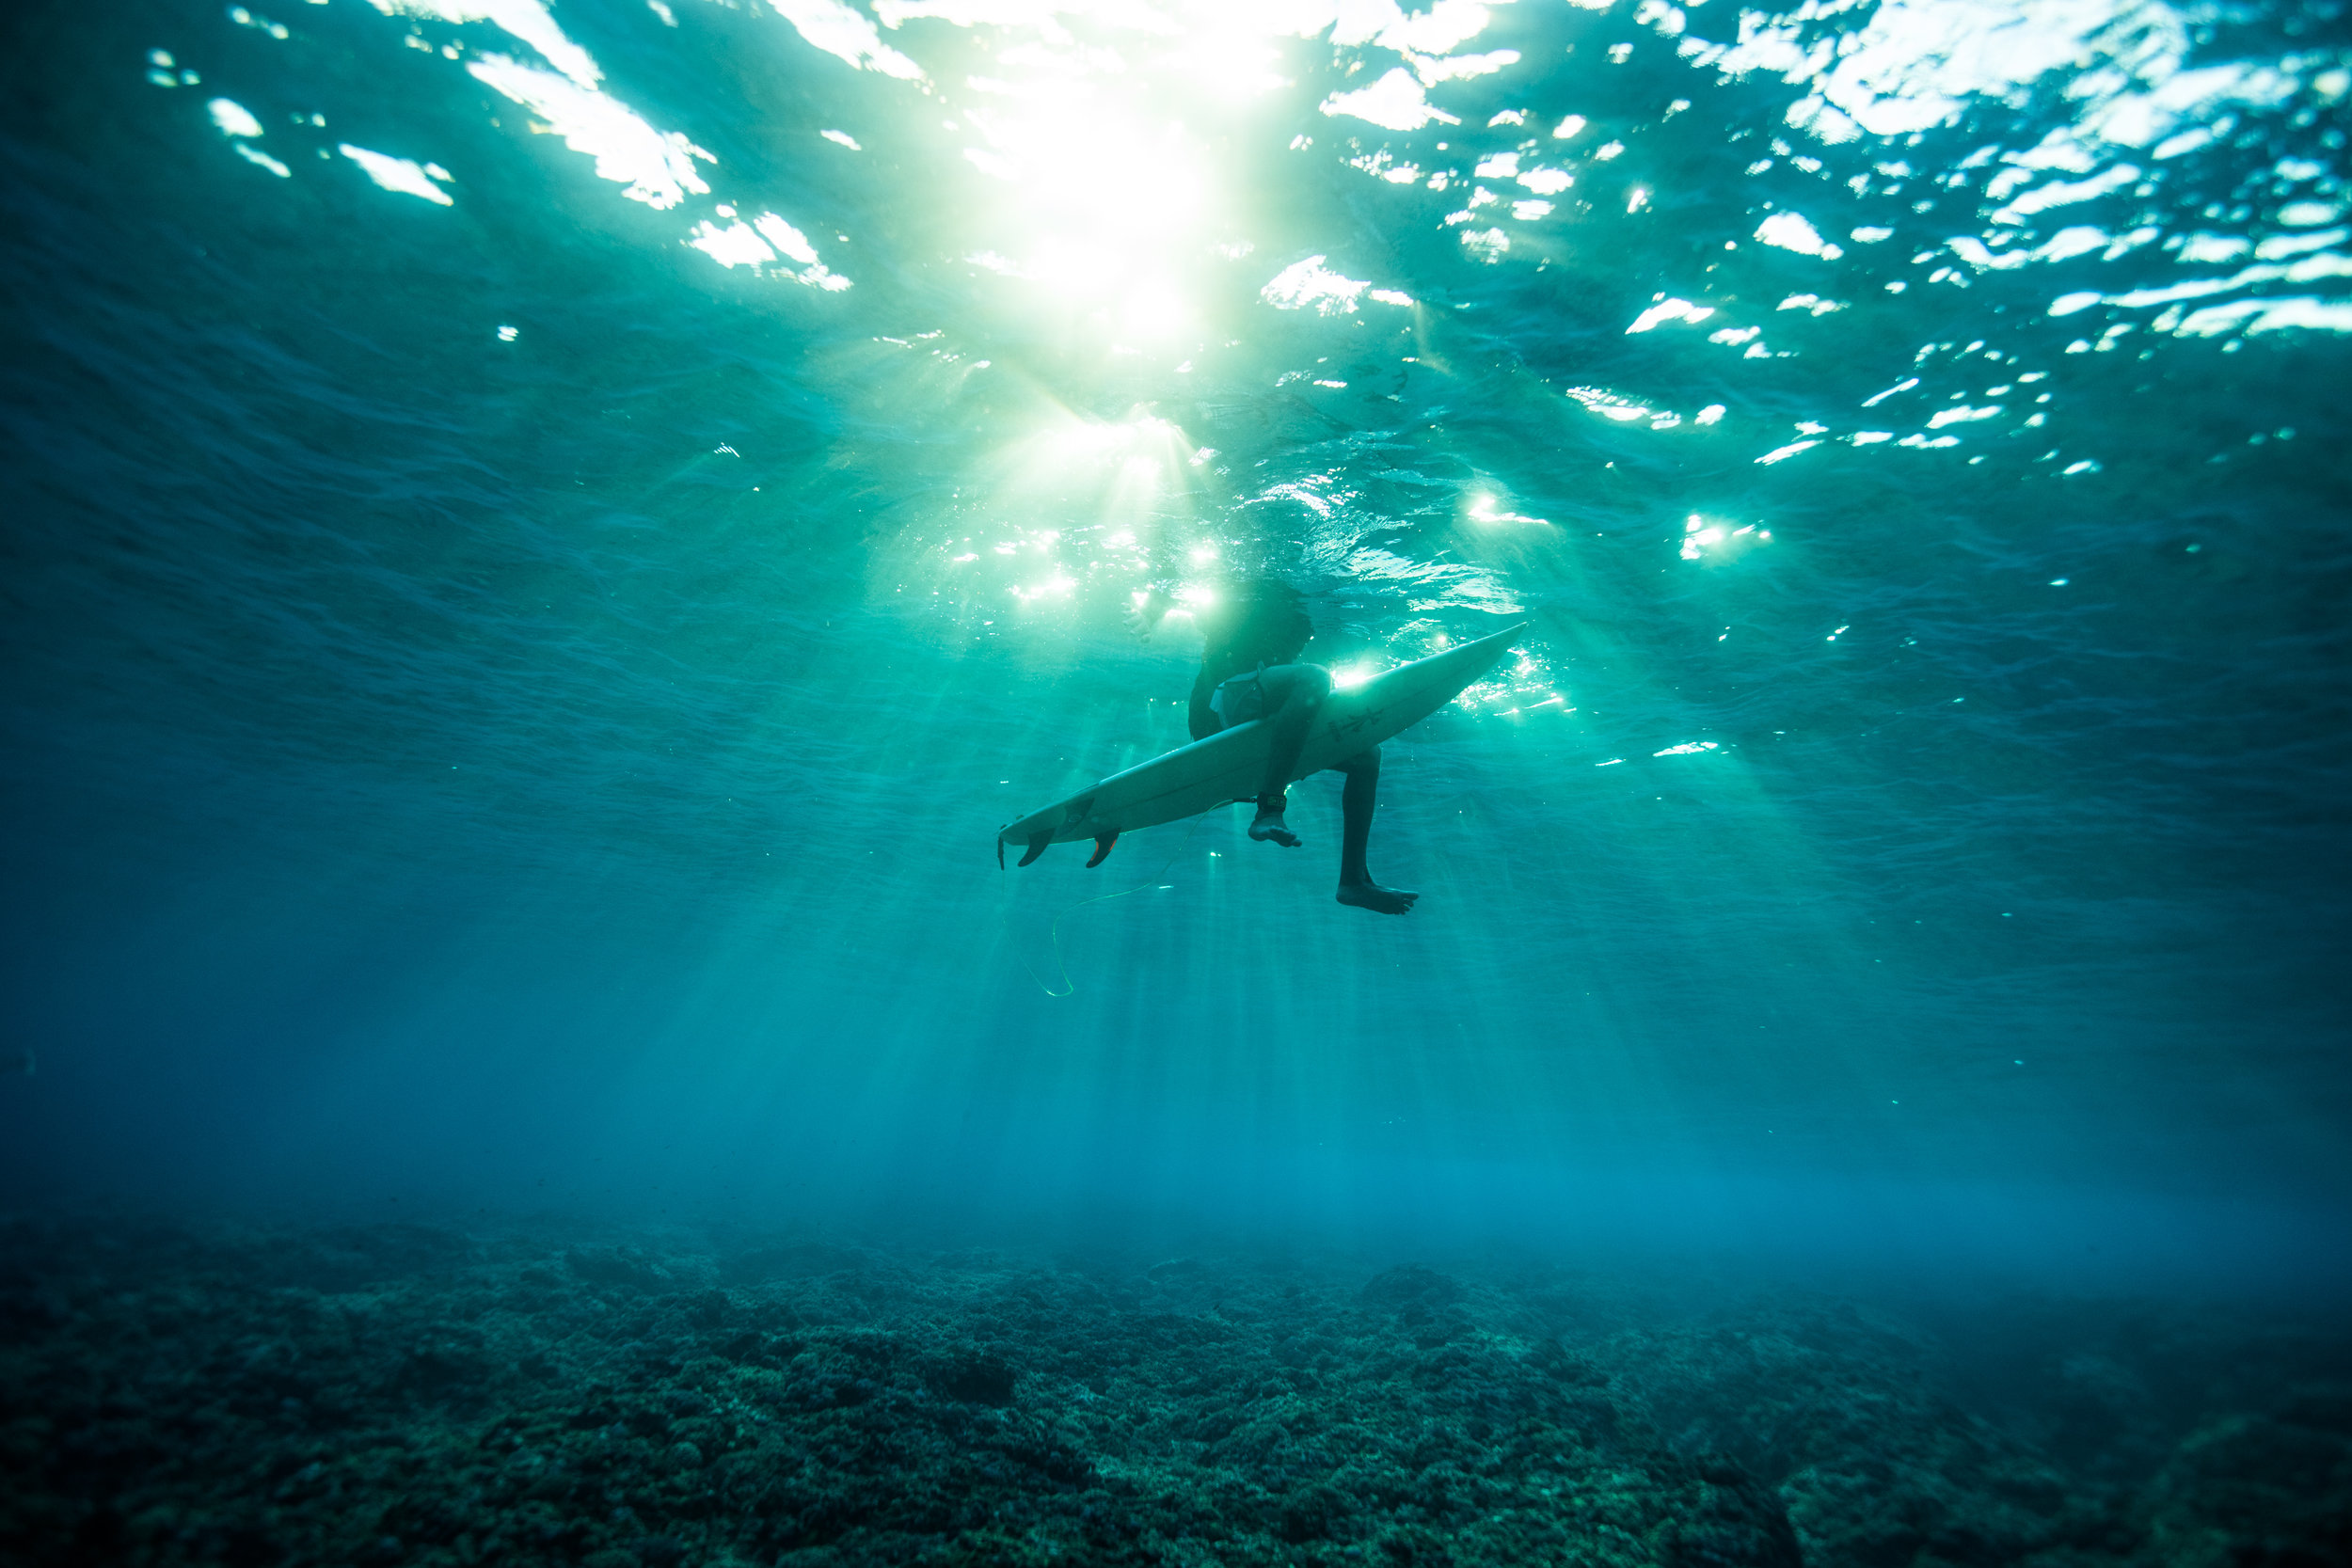 The ocean is a playground we need to protect.